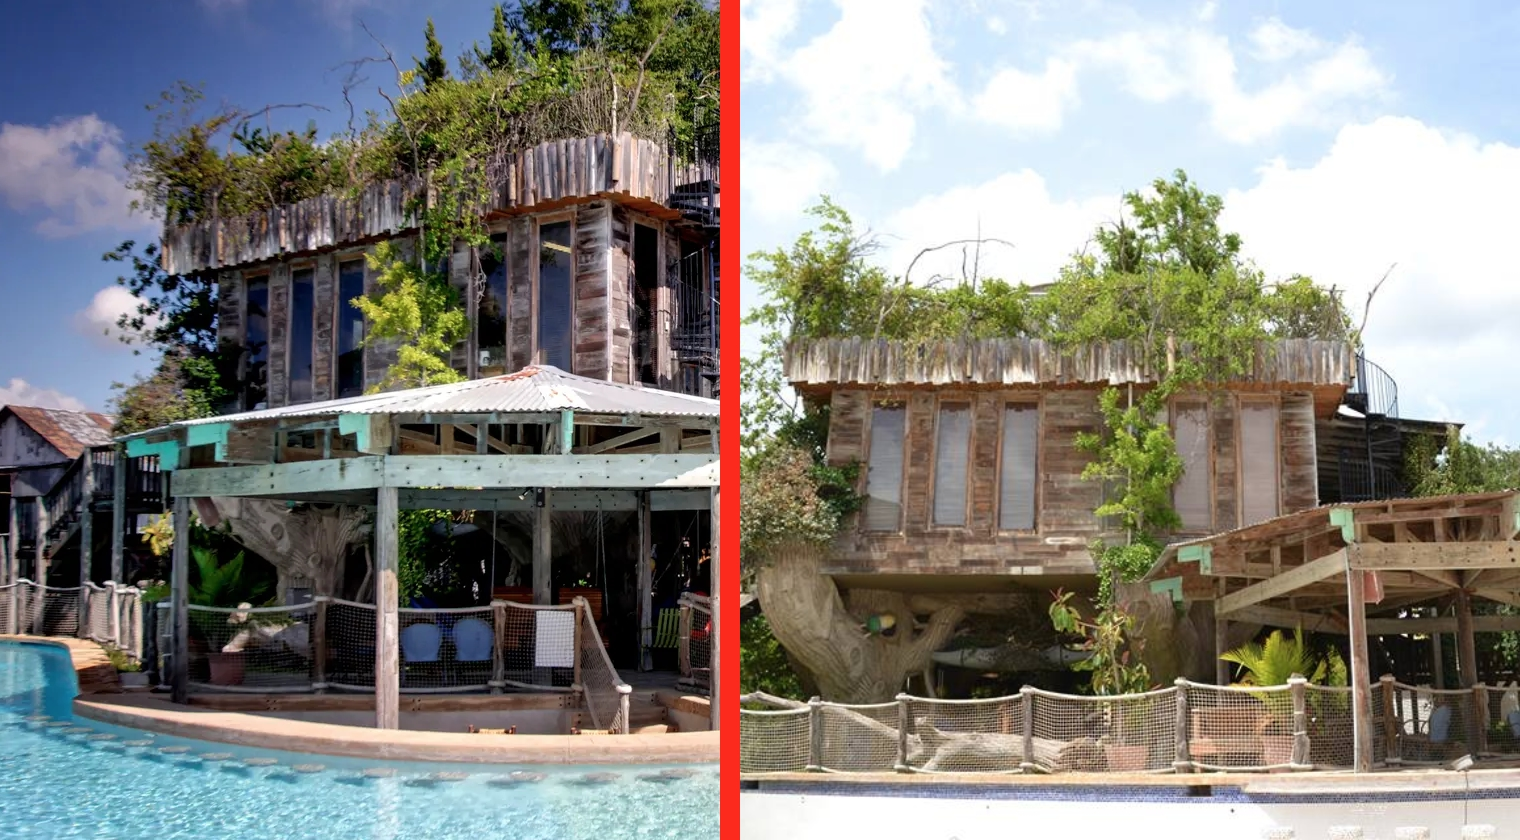 Texas Tree House AirBnb Has Wrap-Around Pool & Is Just 5 ...